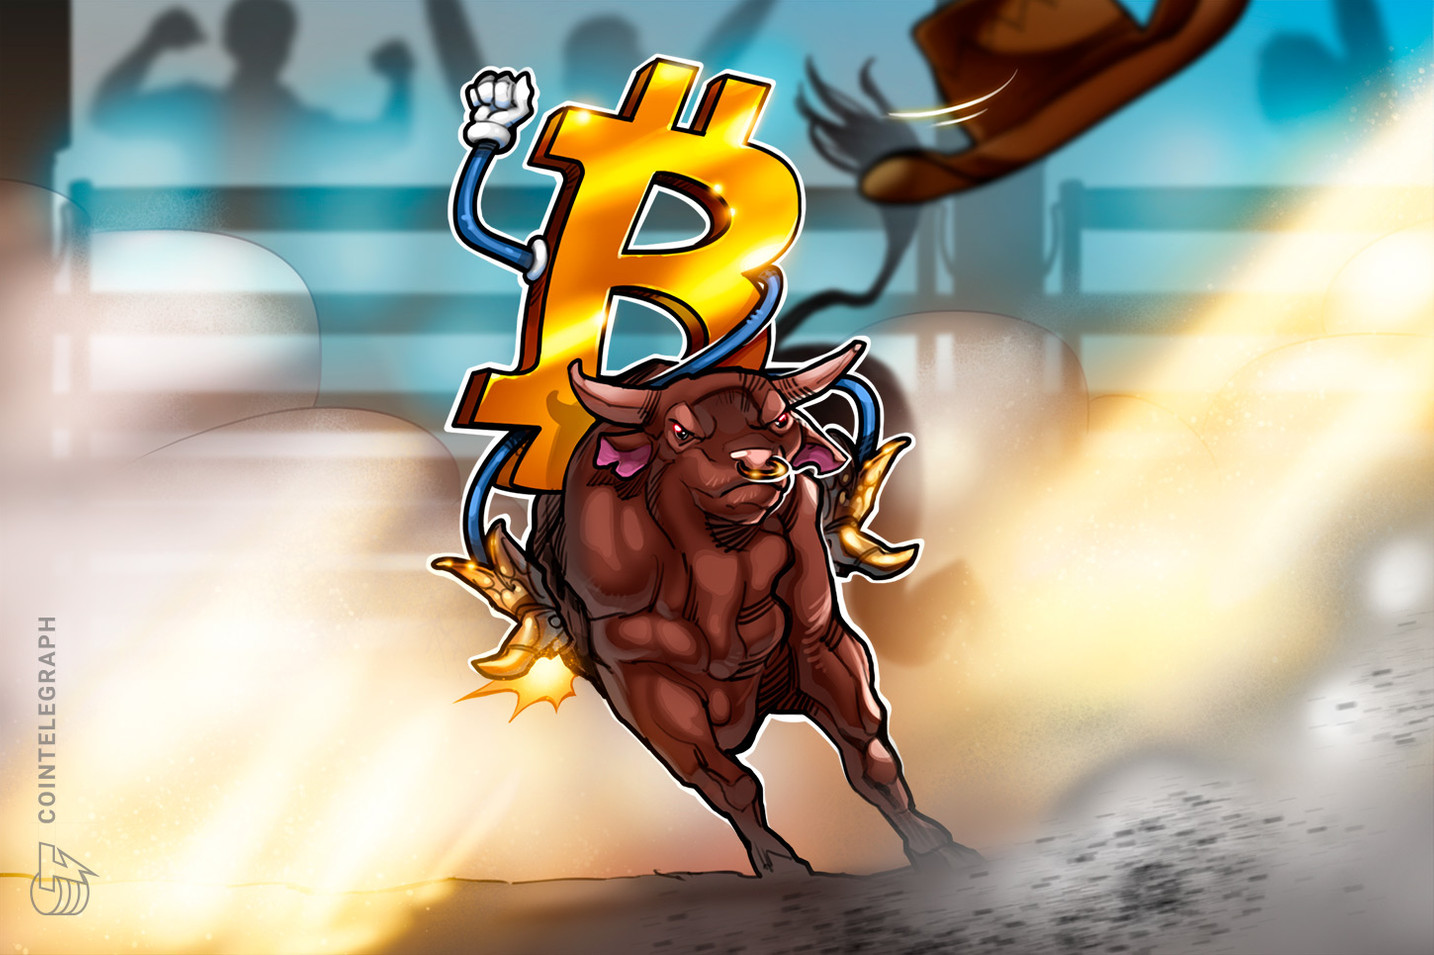 Analysts say Bitcoin price 'needed a breather' before chasing new highs